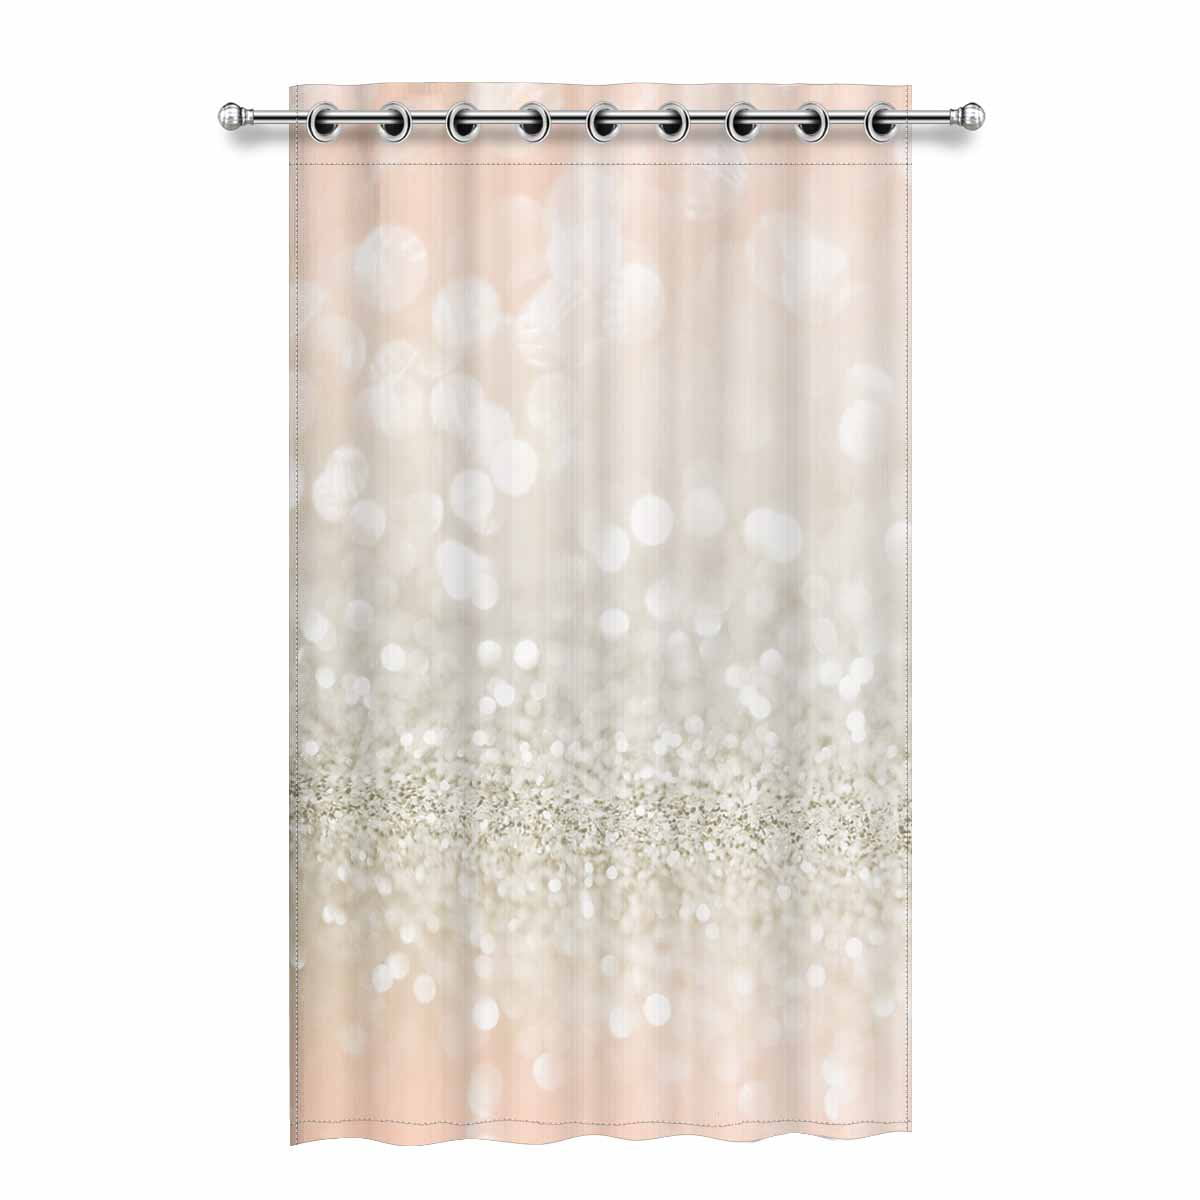 Yusdecor Rose Gold Glitter Blackout Window Curtain Drapes Bedroom Living Room Kitchen Curtains 52x84 Inch Walmart Canada